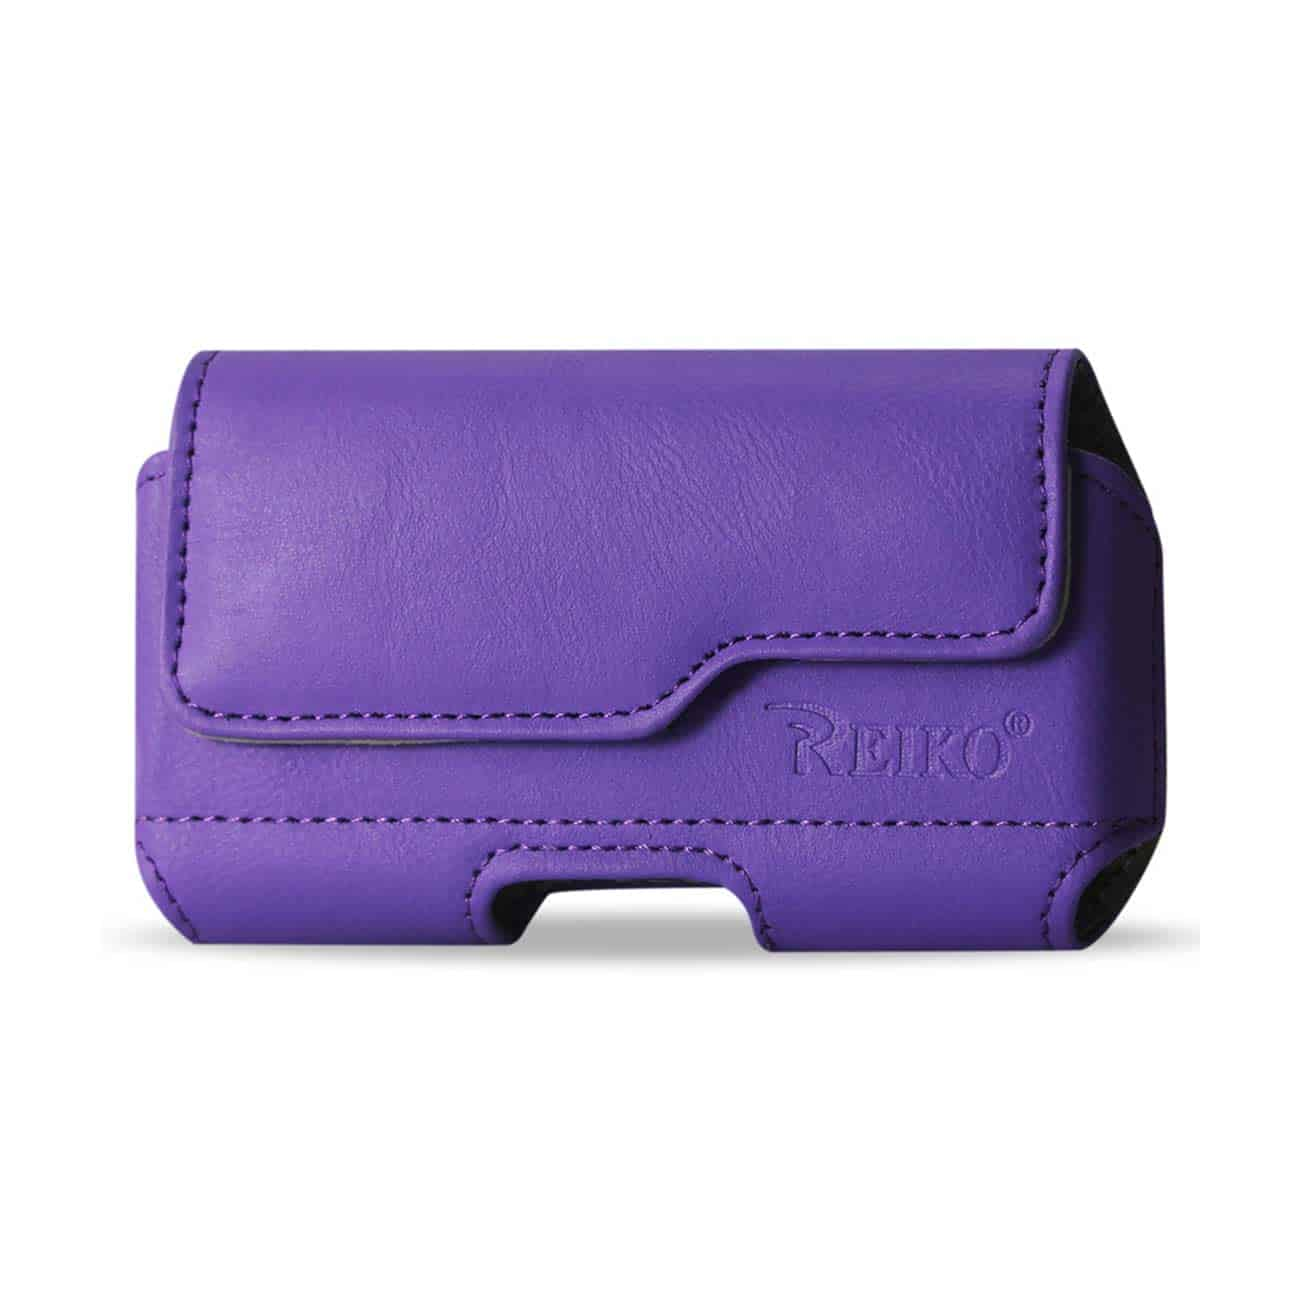 HORIZONTAL Z LID LEATHER POUCH SAMSUNG GALAXY S3/ I9300/ R53 X PLUS PURPLE